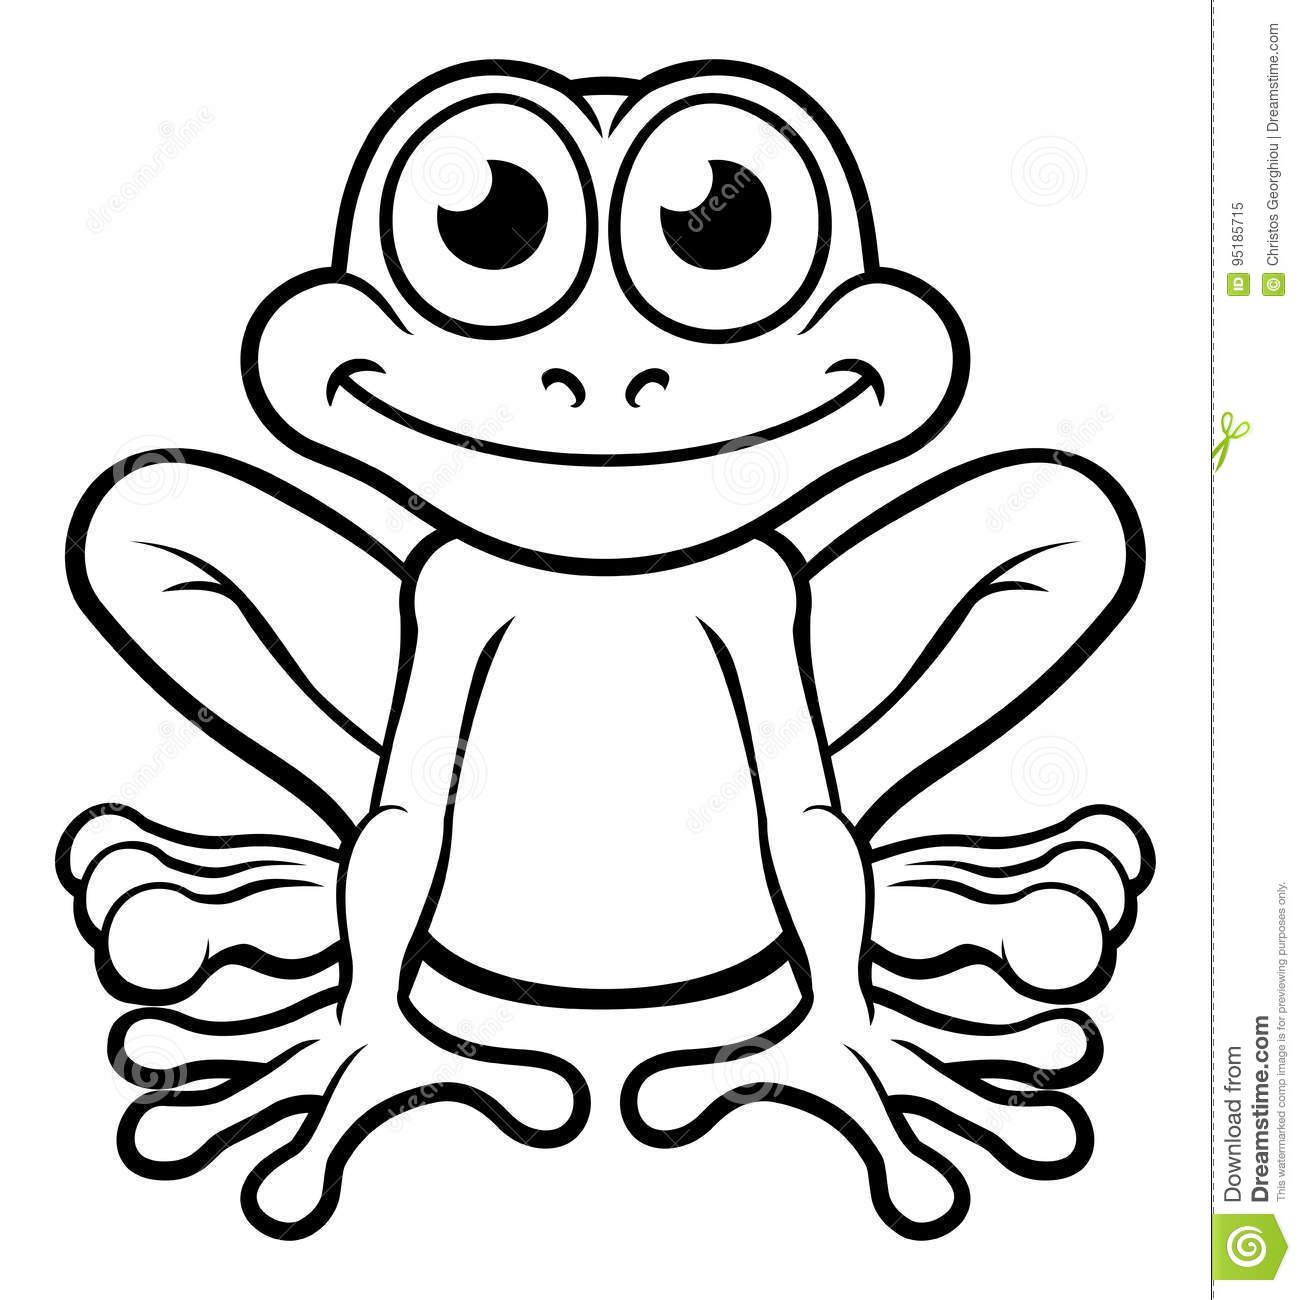 Image result for cute frog clipart black and white Frog